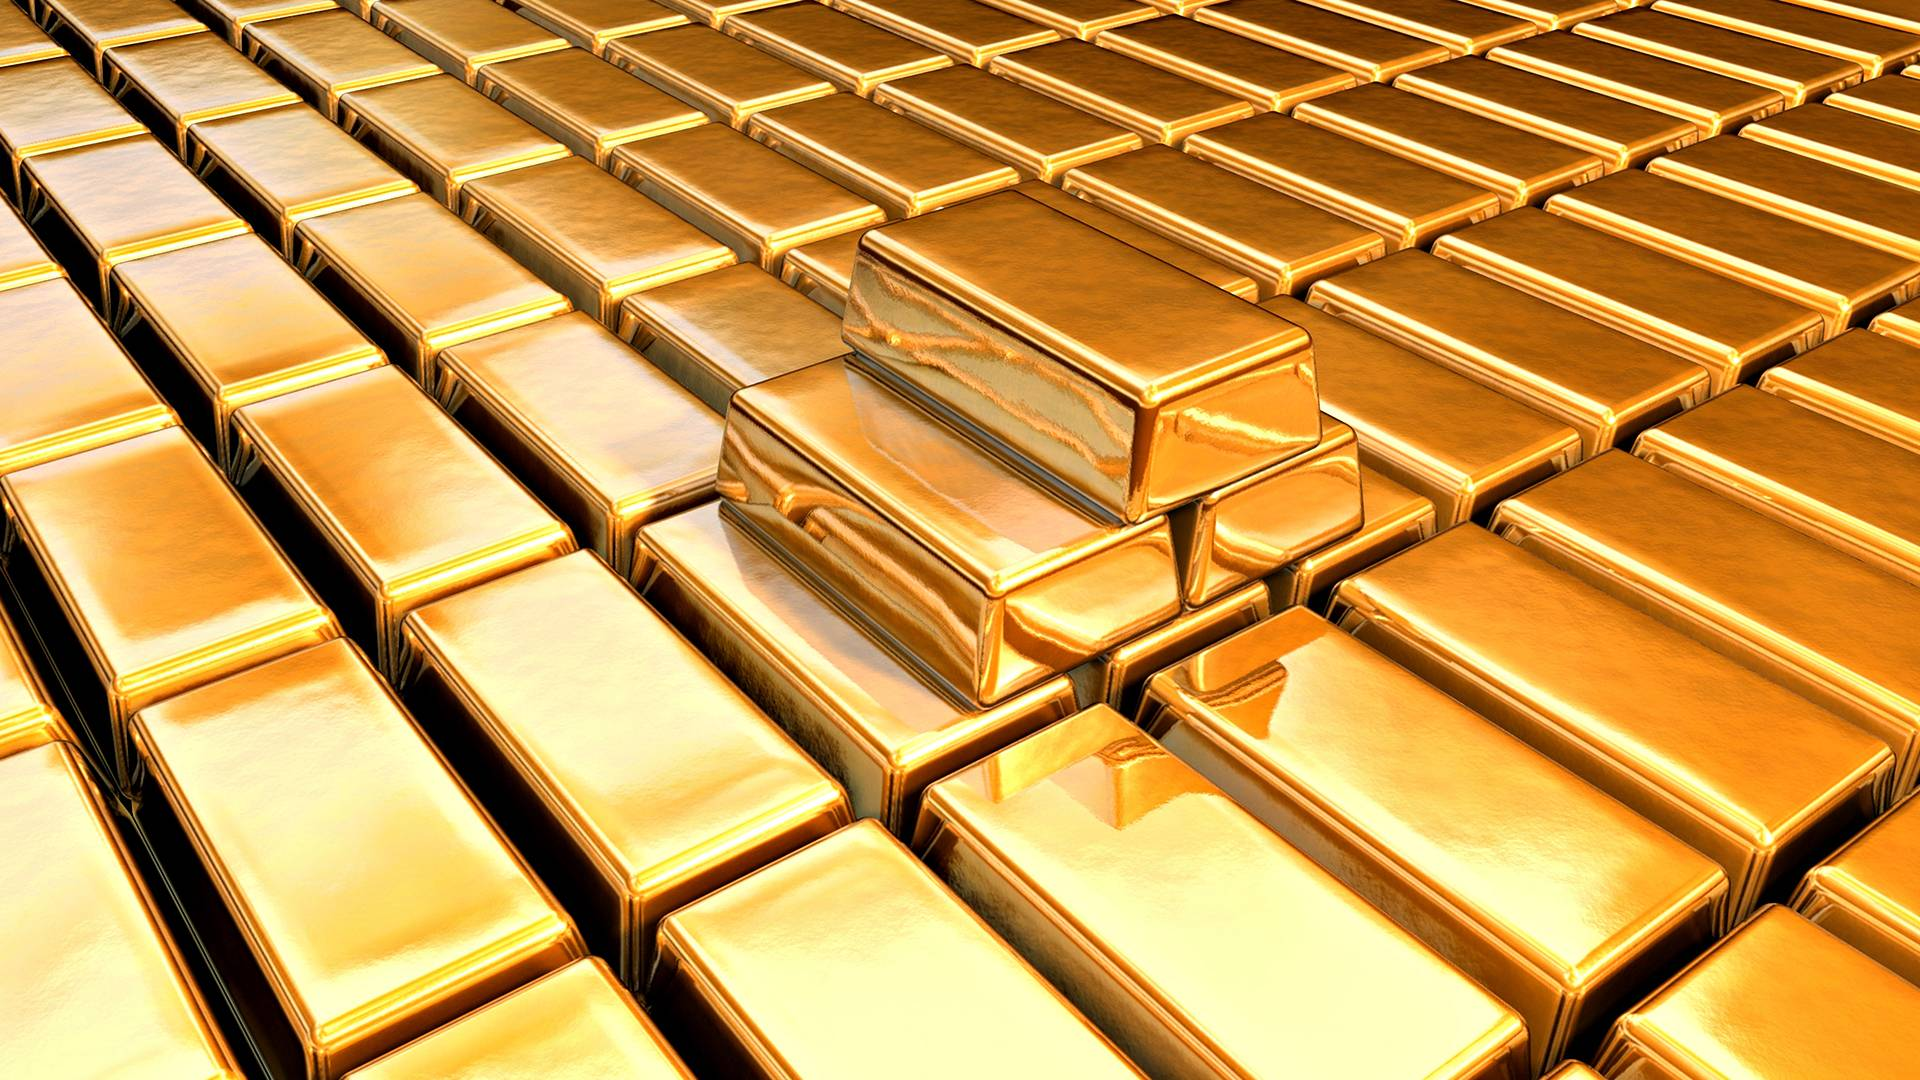 Gold Bars Money Wallpapers 44236 1920x1080 px ~ HDWallSource